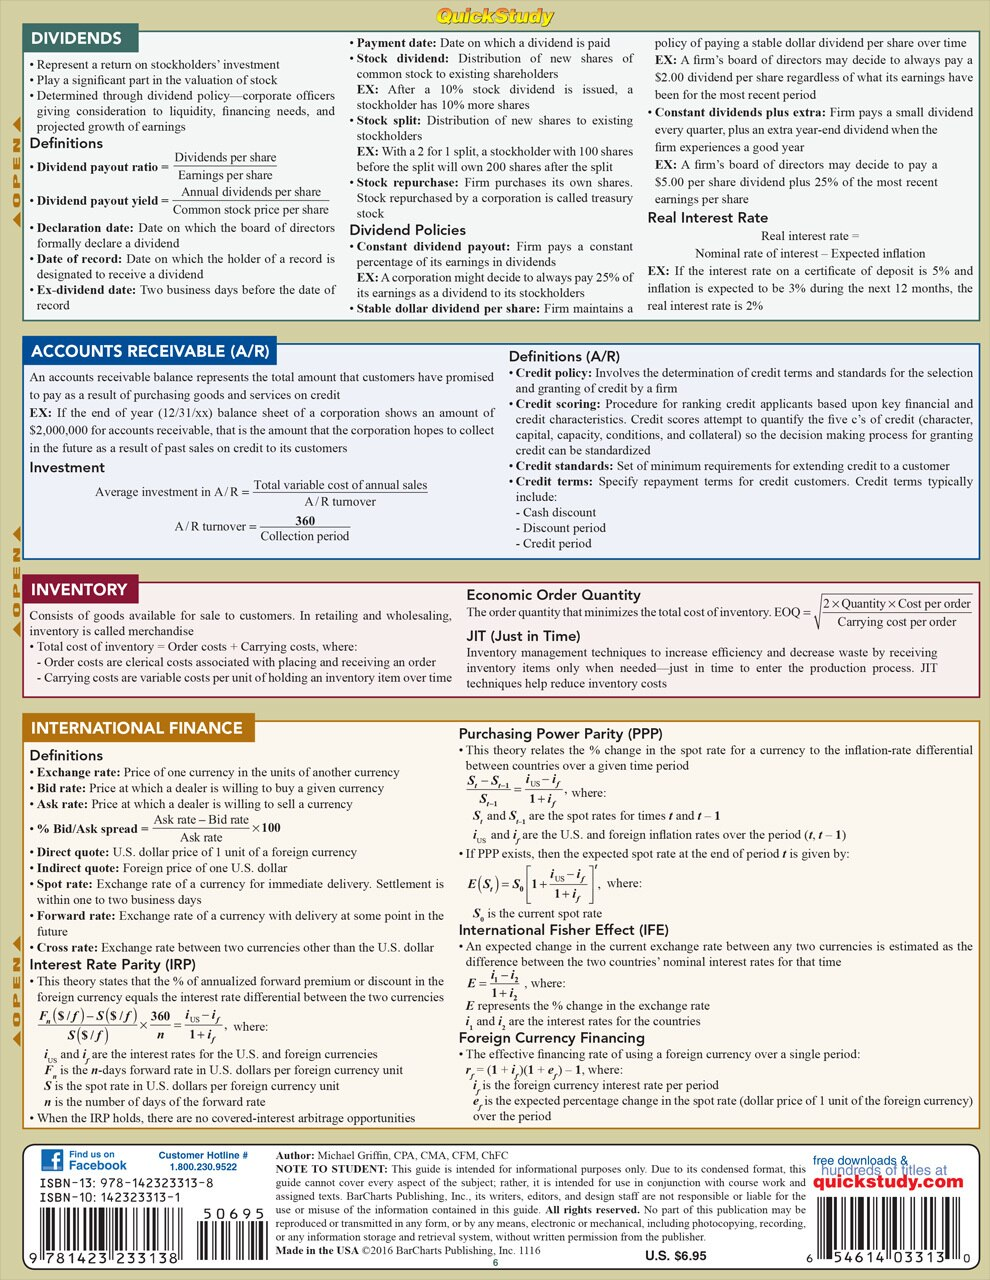 Quick Study QuickStudy Finance Laminated Study Guide BarCharts Publishing Business Reference Guide Back Image